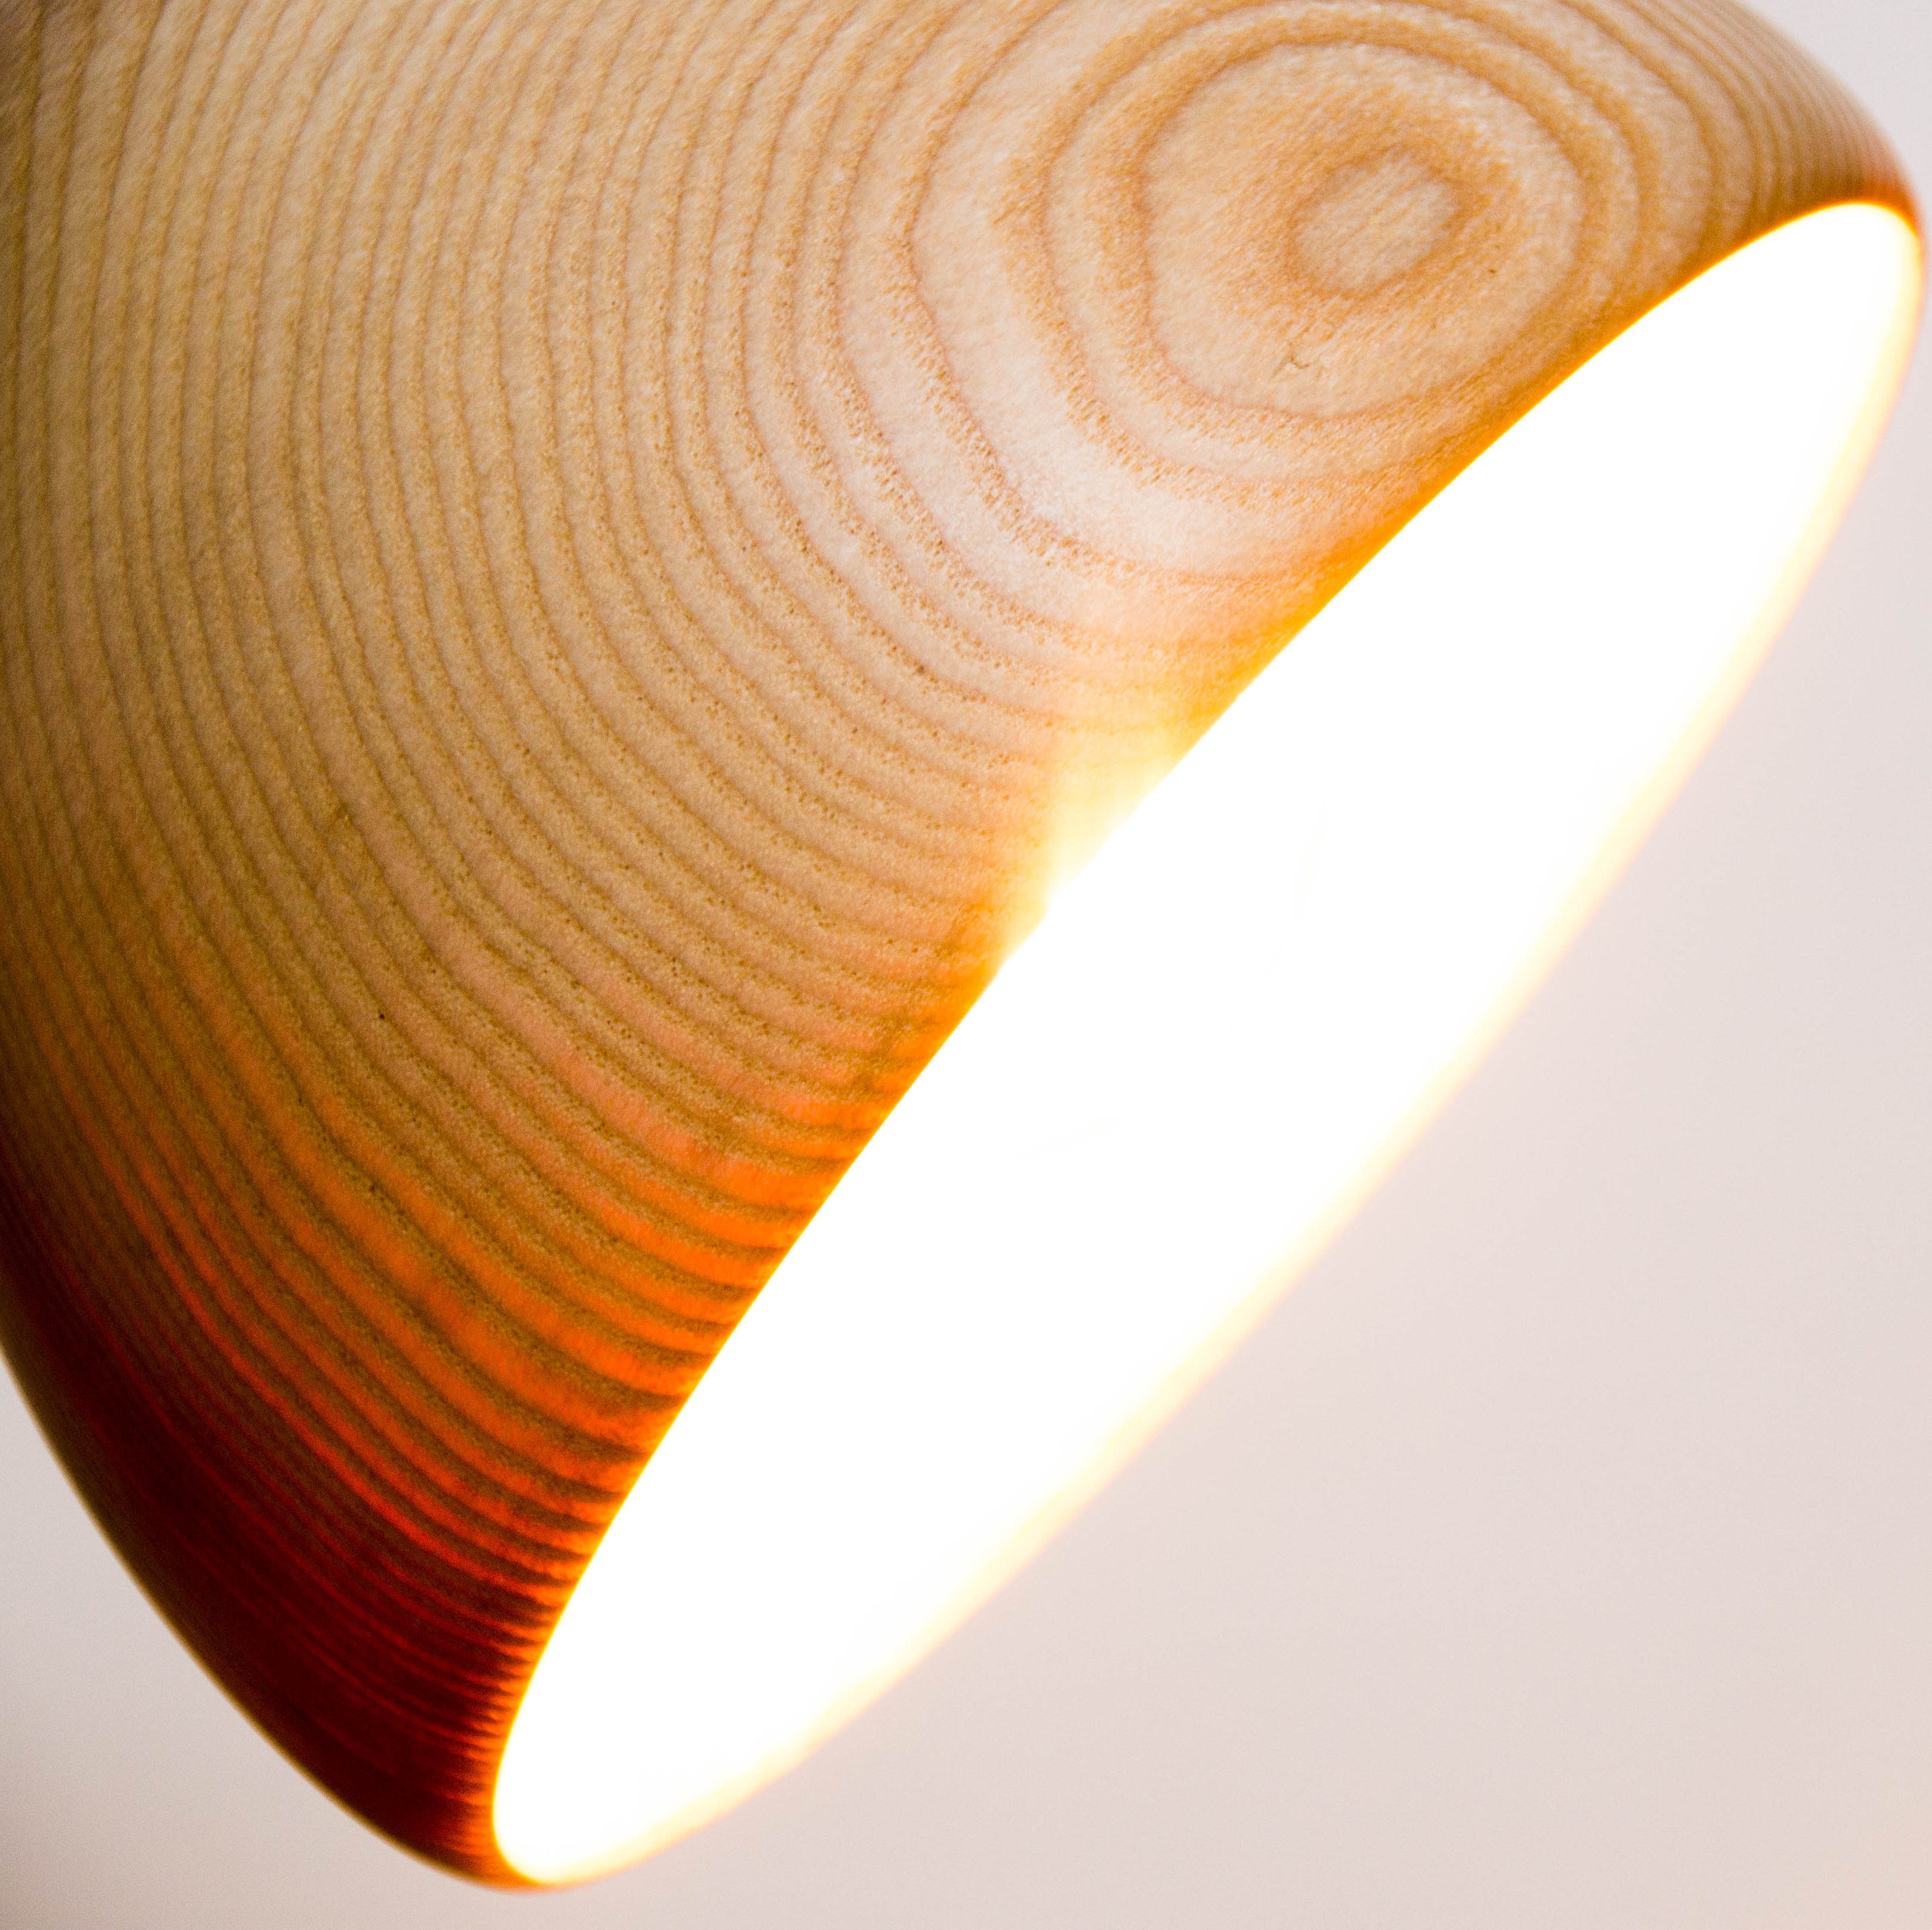 Desk lamp (7 of 18)-001.jpg